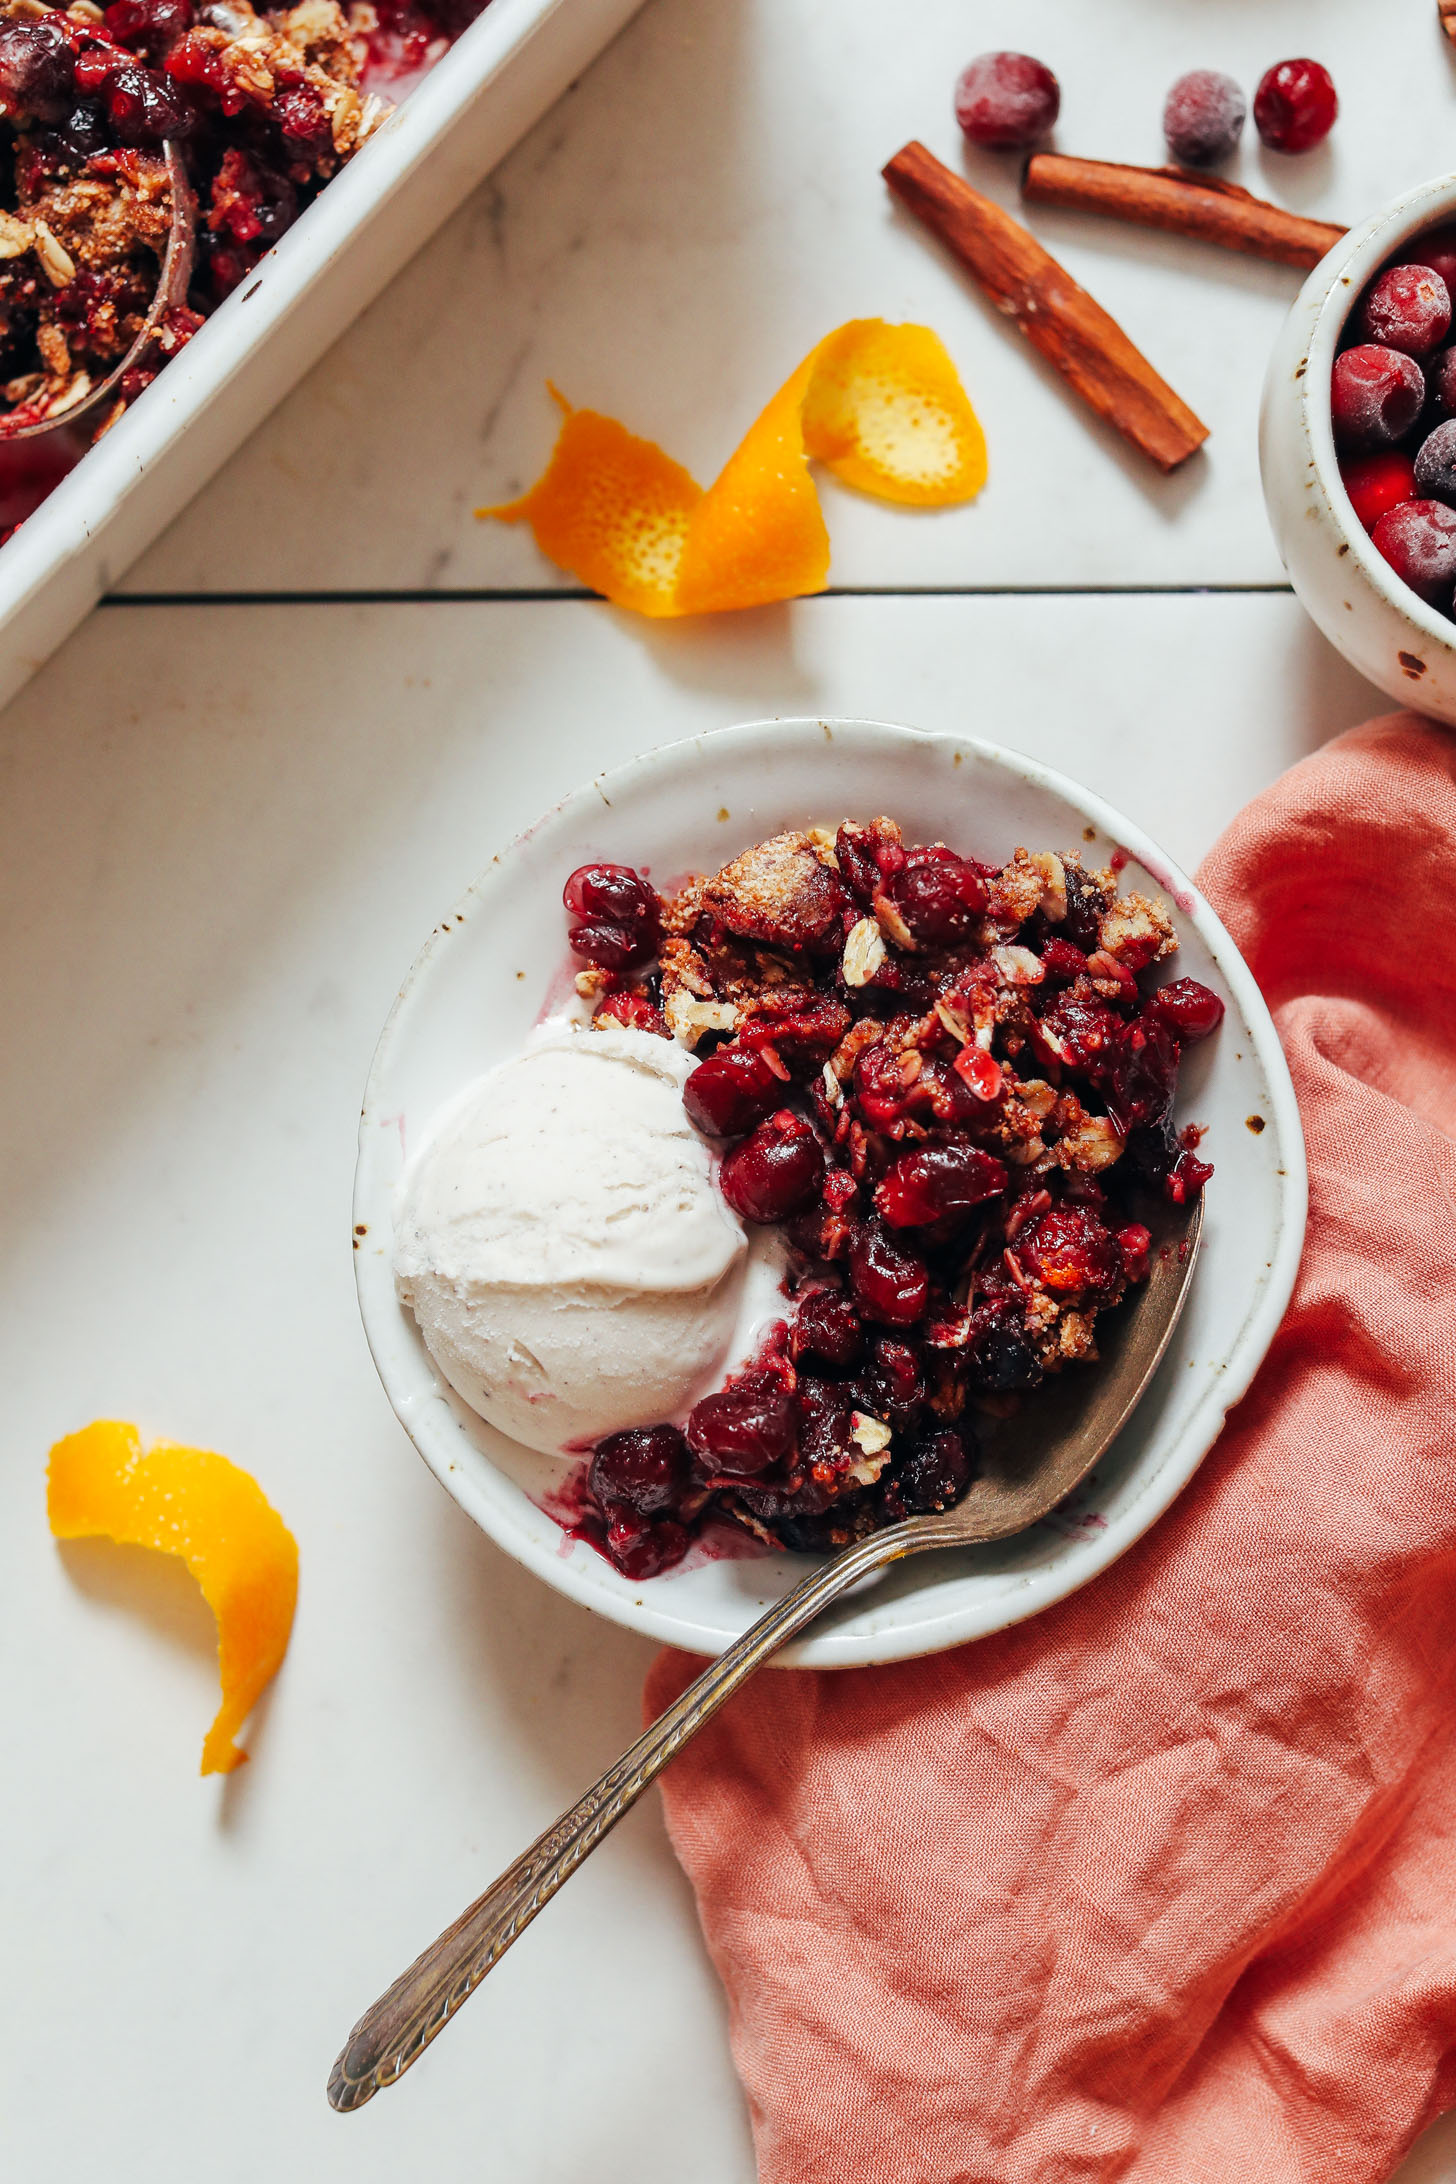 Spoon in a bowl of gluten-free cranberry crisp with vegan vanilla ice cream